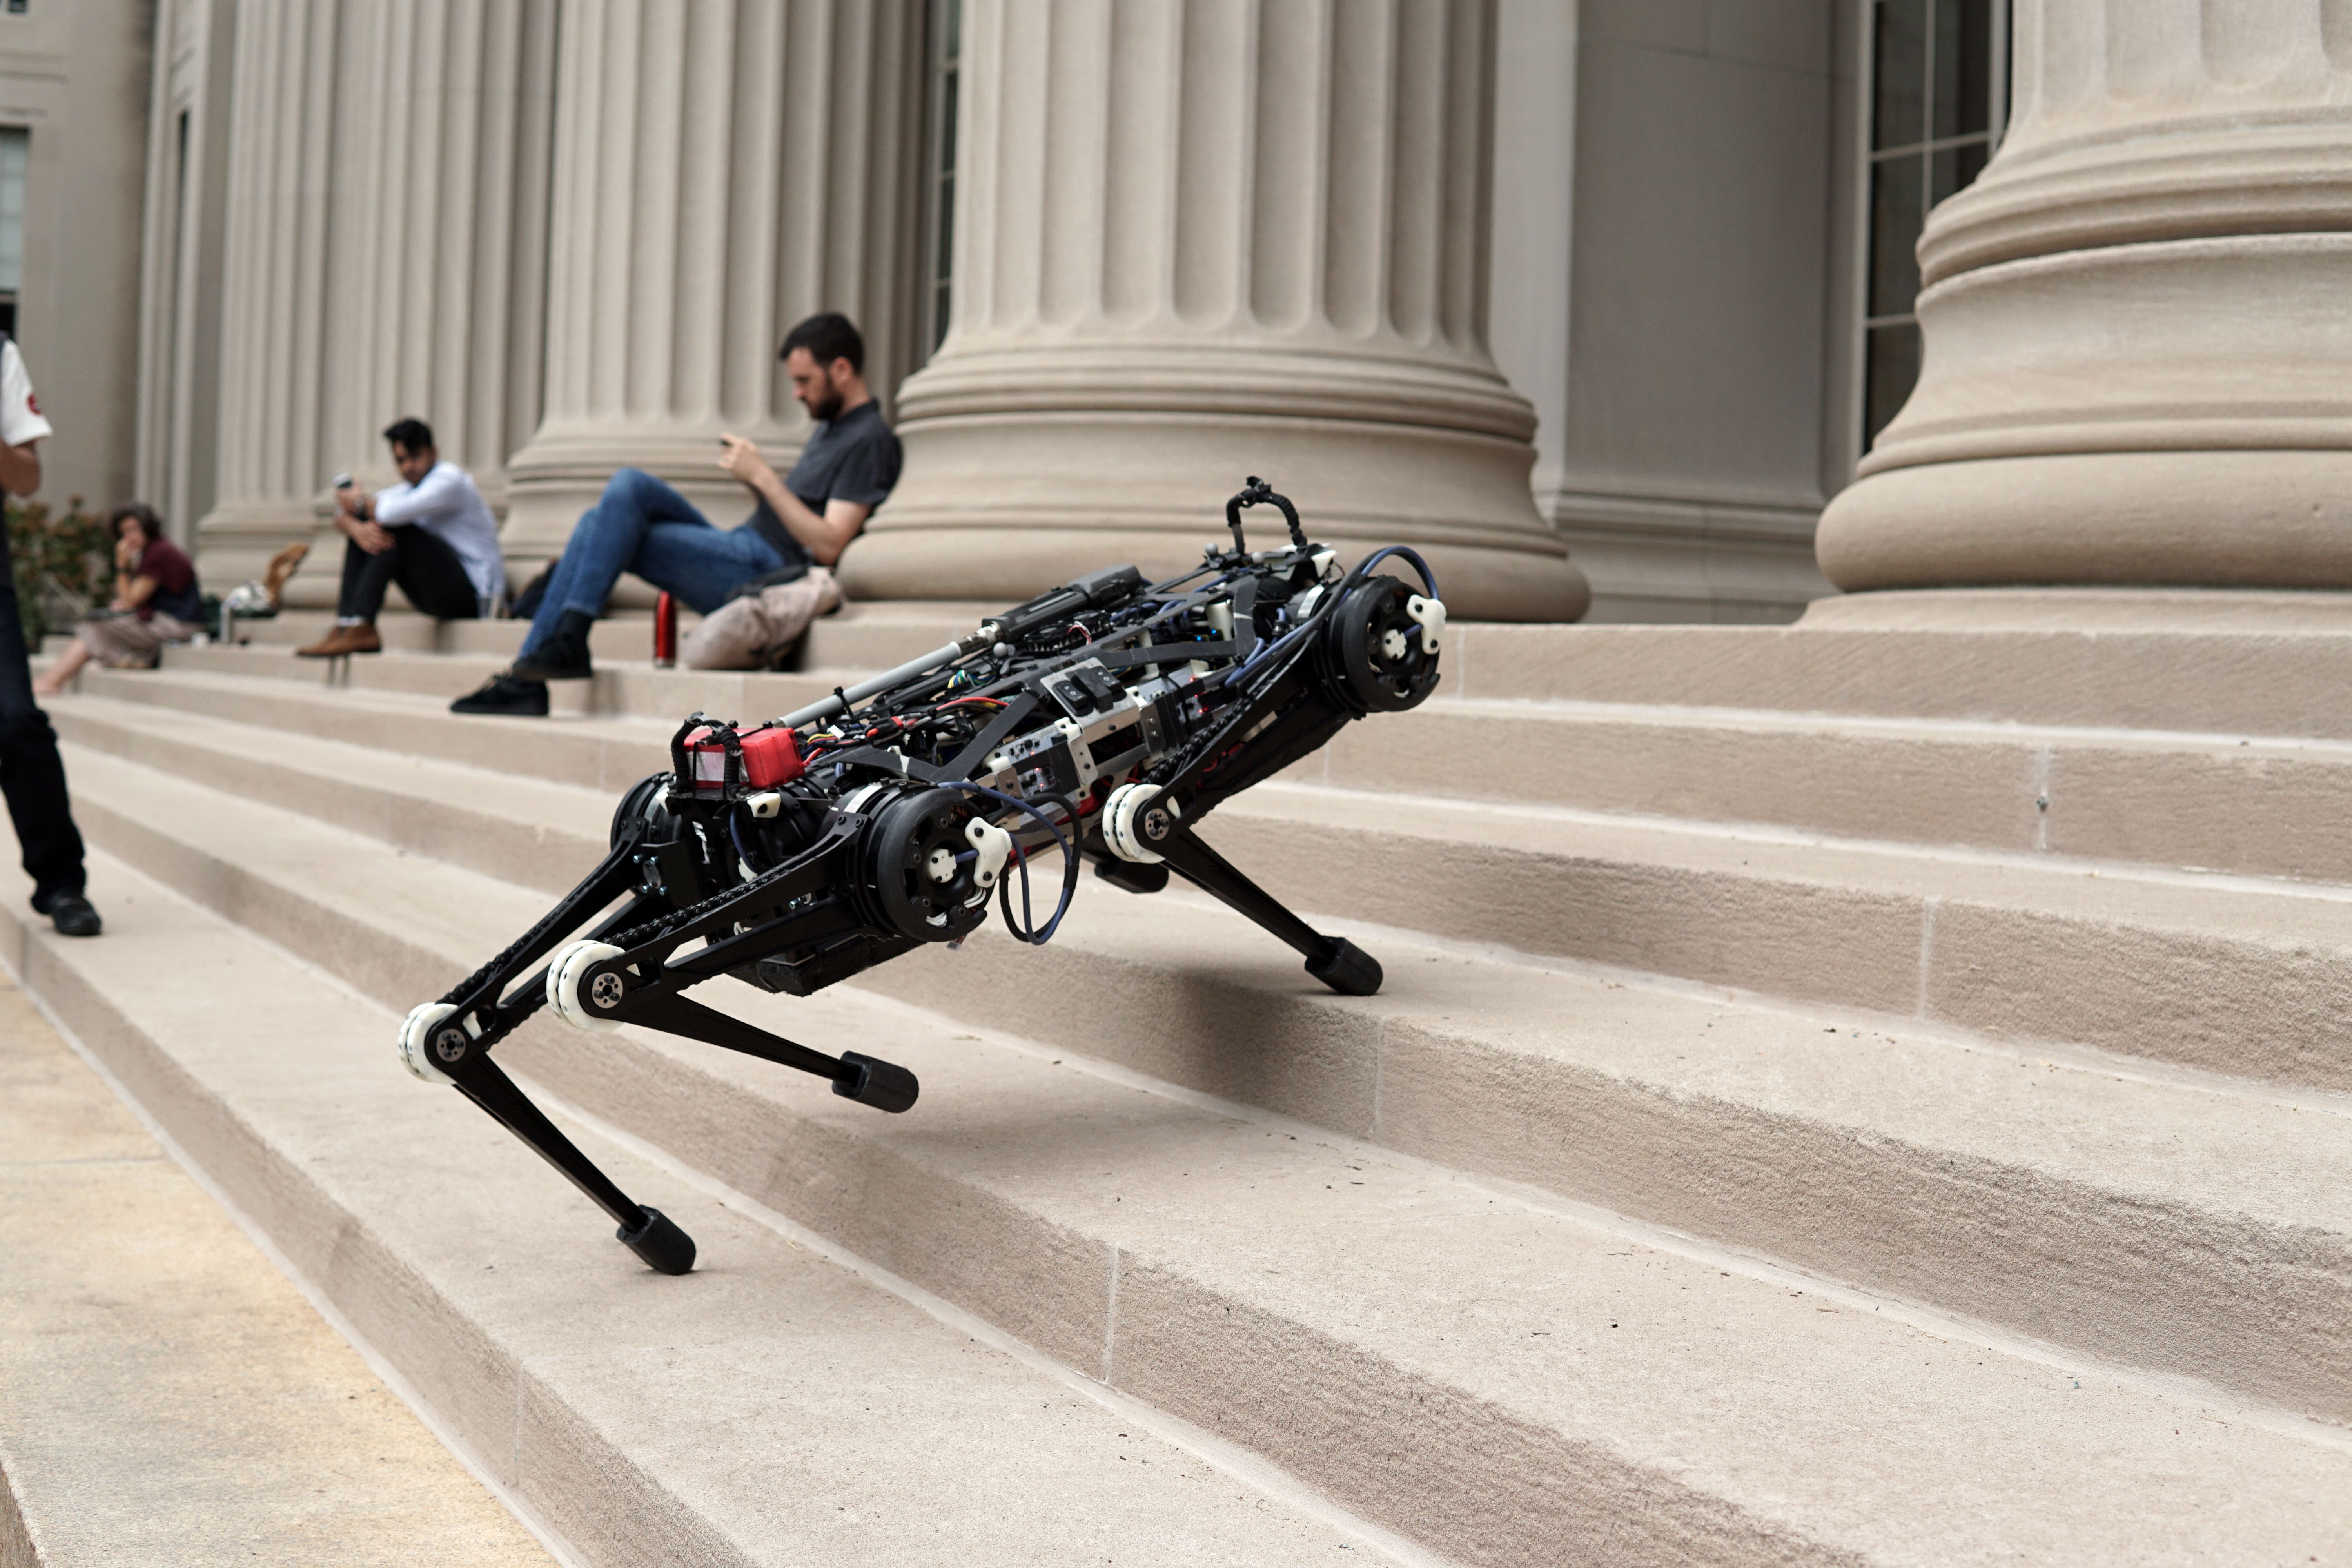 Blind Cheetah 3 Robot Can Climb Stairs Littered With Obstacles Mit News Massachusetts Institute Of Technology